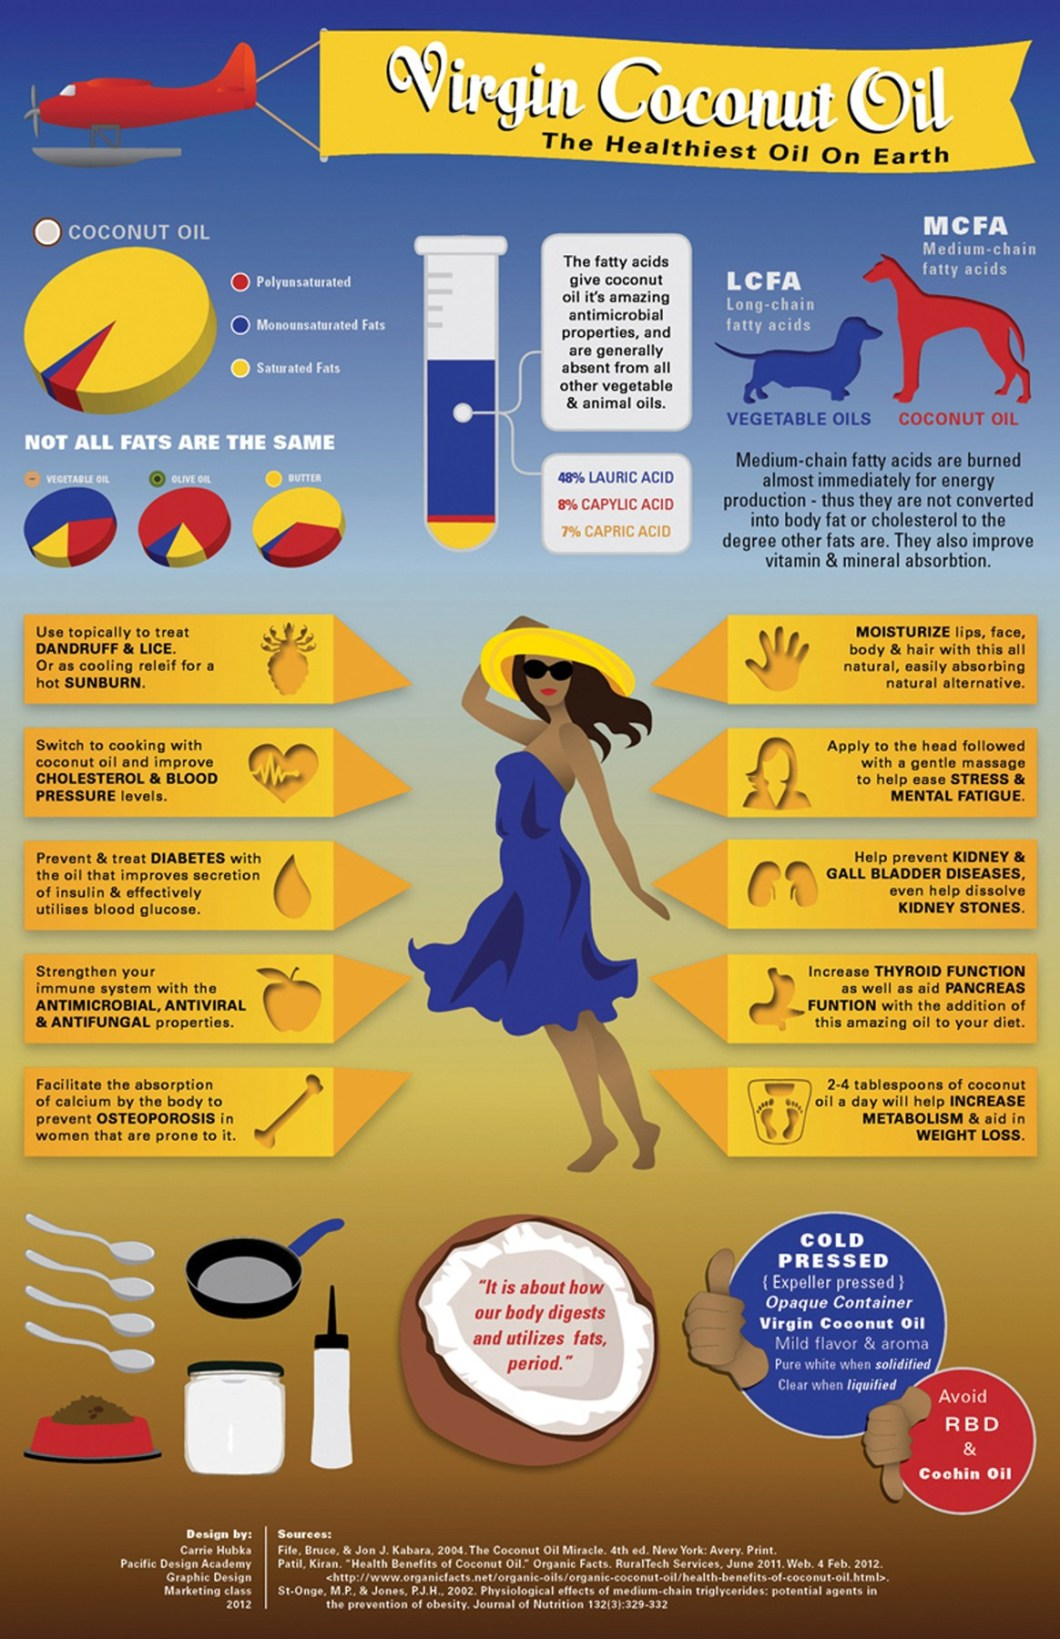 Why Virgin Coconut Oil is the Healthiest Oil on Earth - Infographic